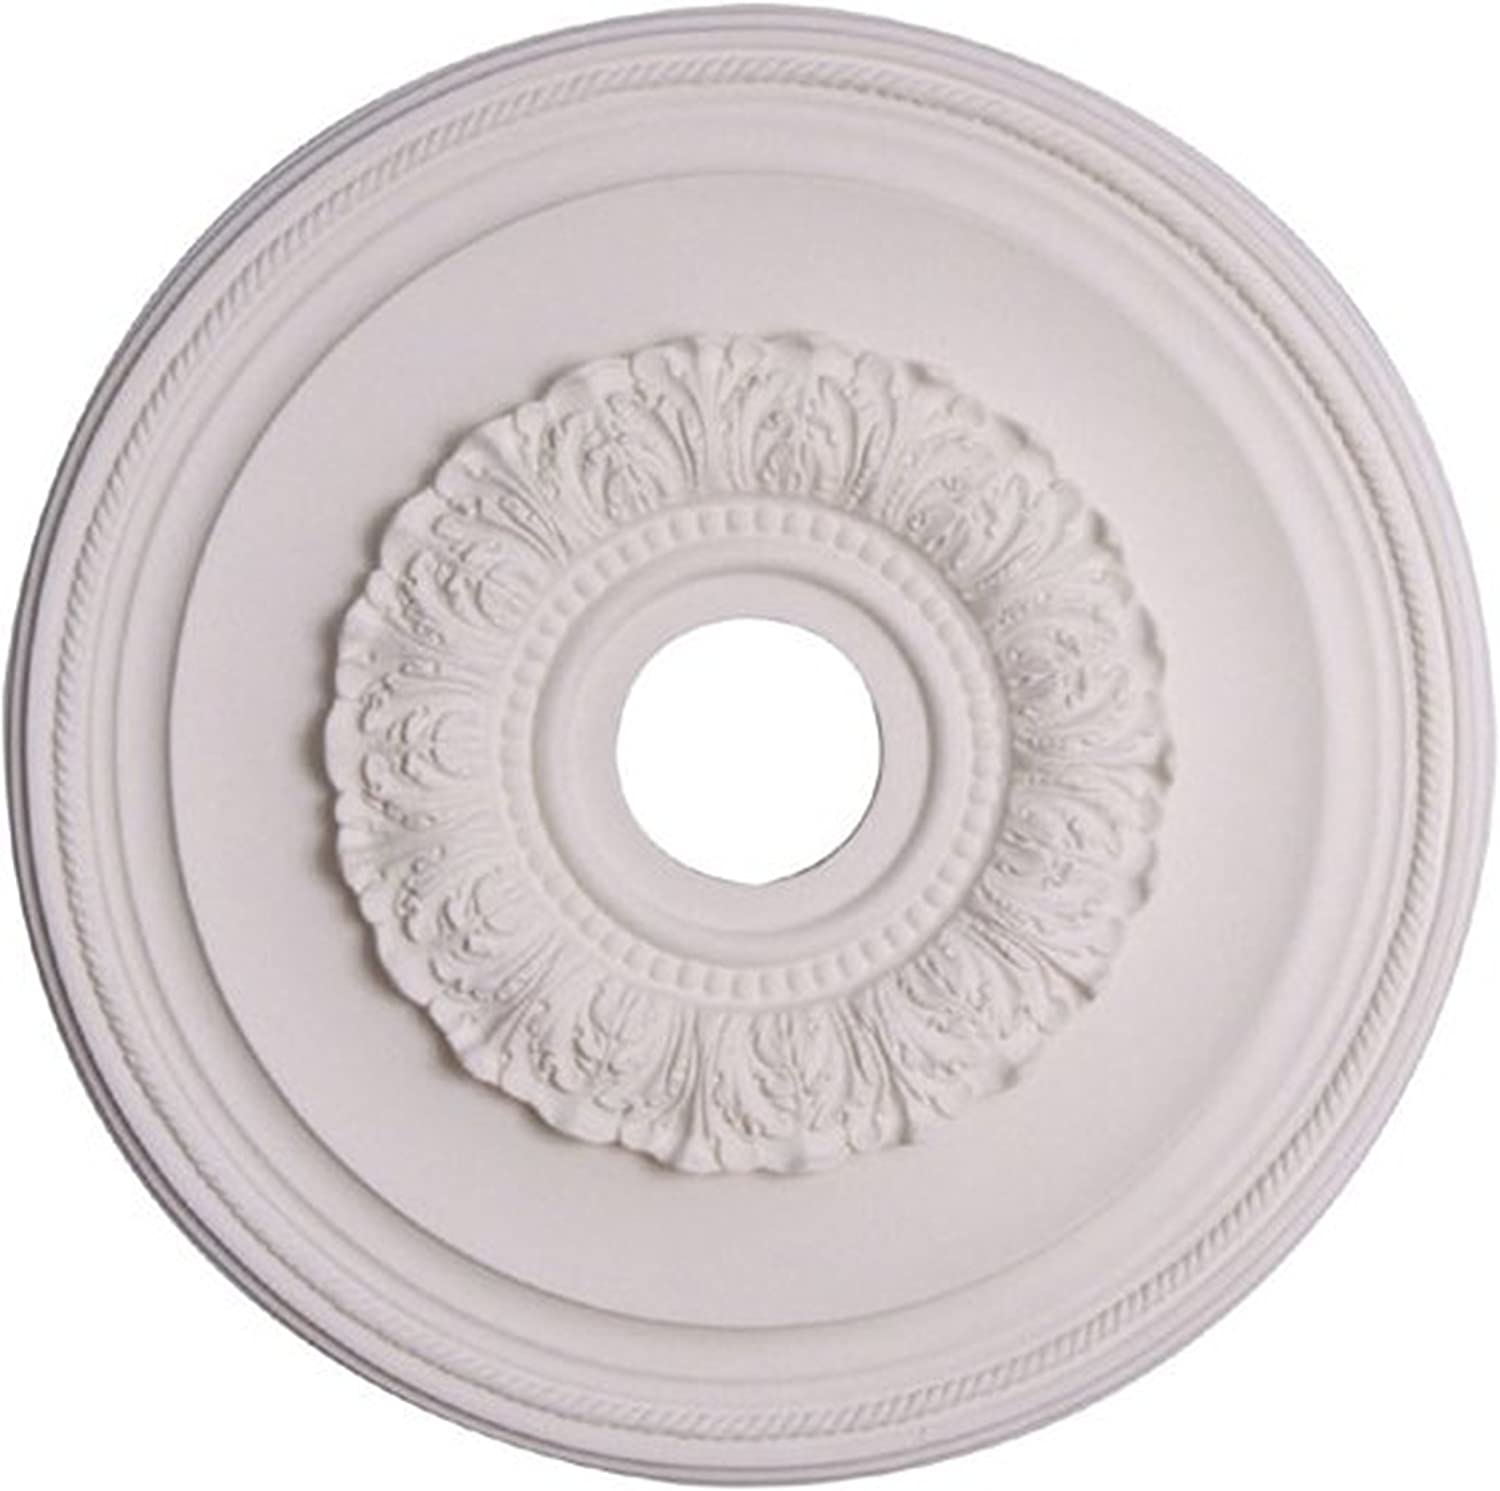 Capital Max 77% OFF Lighting National uniform free shipping 79481 Ansley White Paintable Medallion 16-Inch